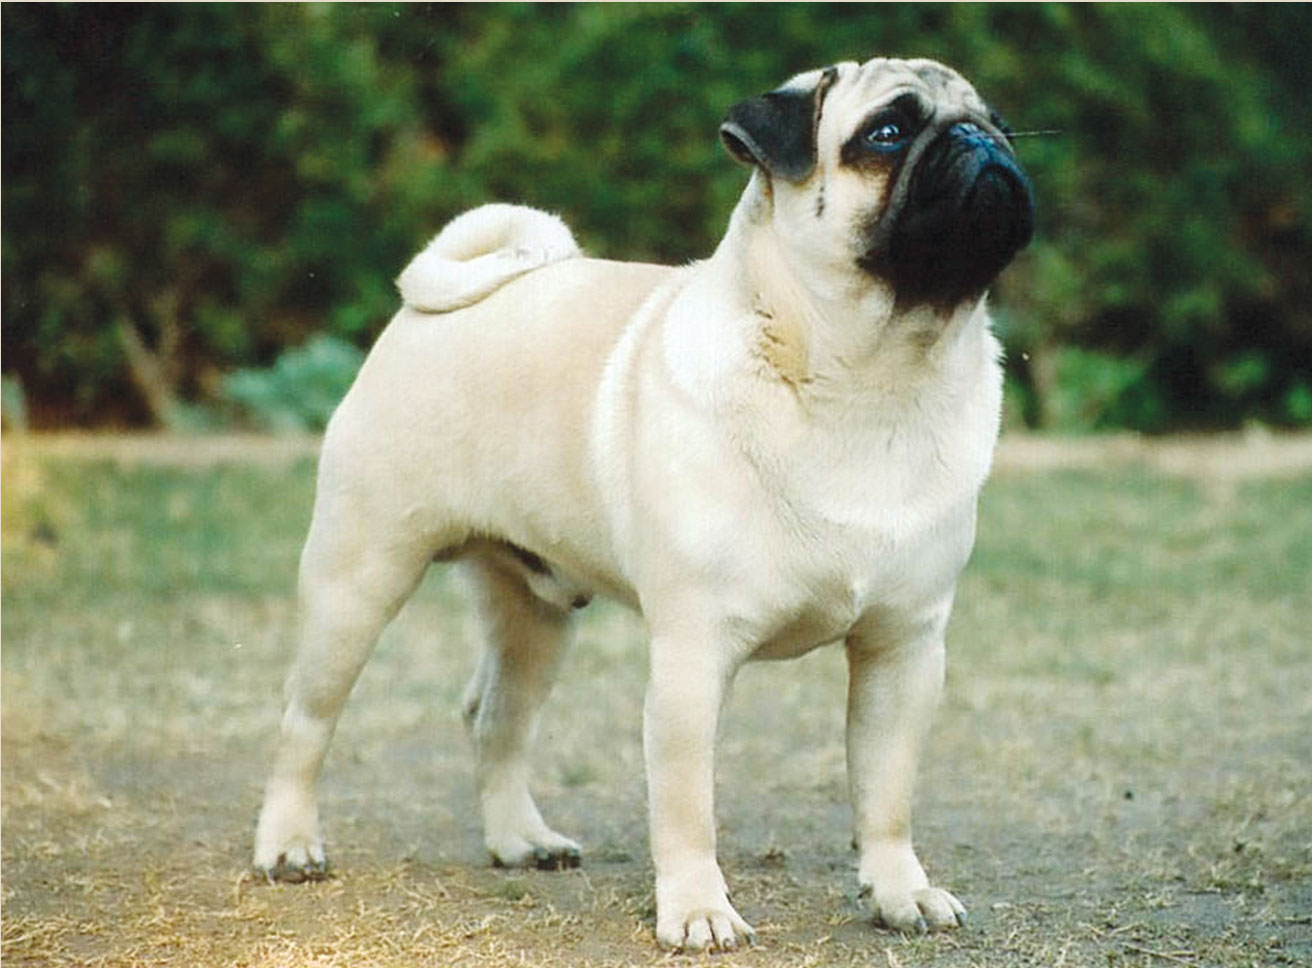 All Wallpapers Pug Dog Hd Wallpapers 1312x968